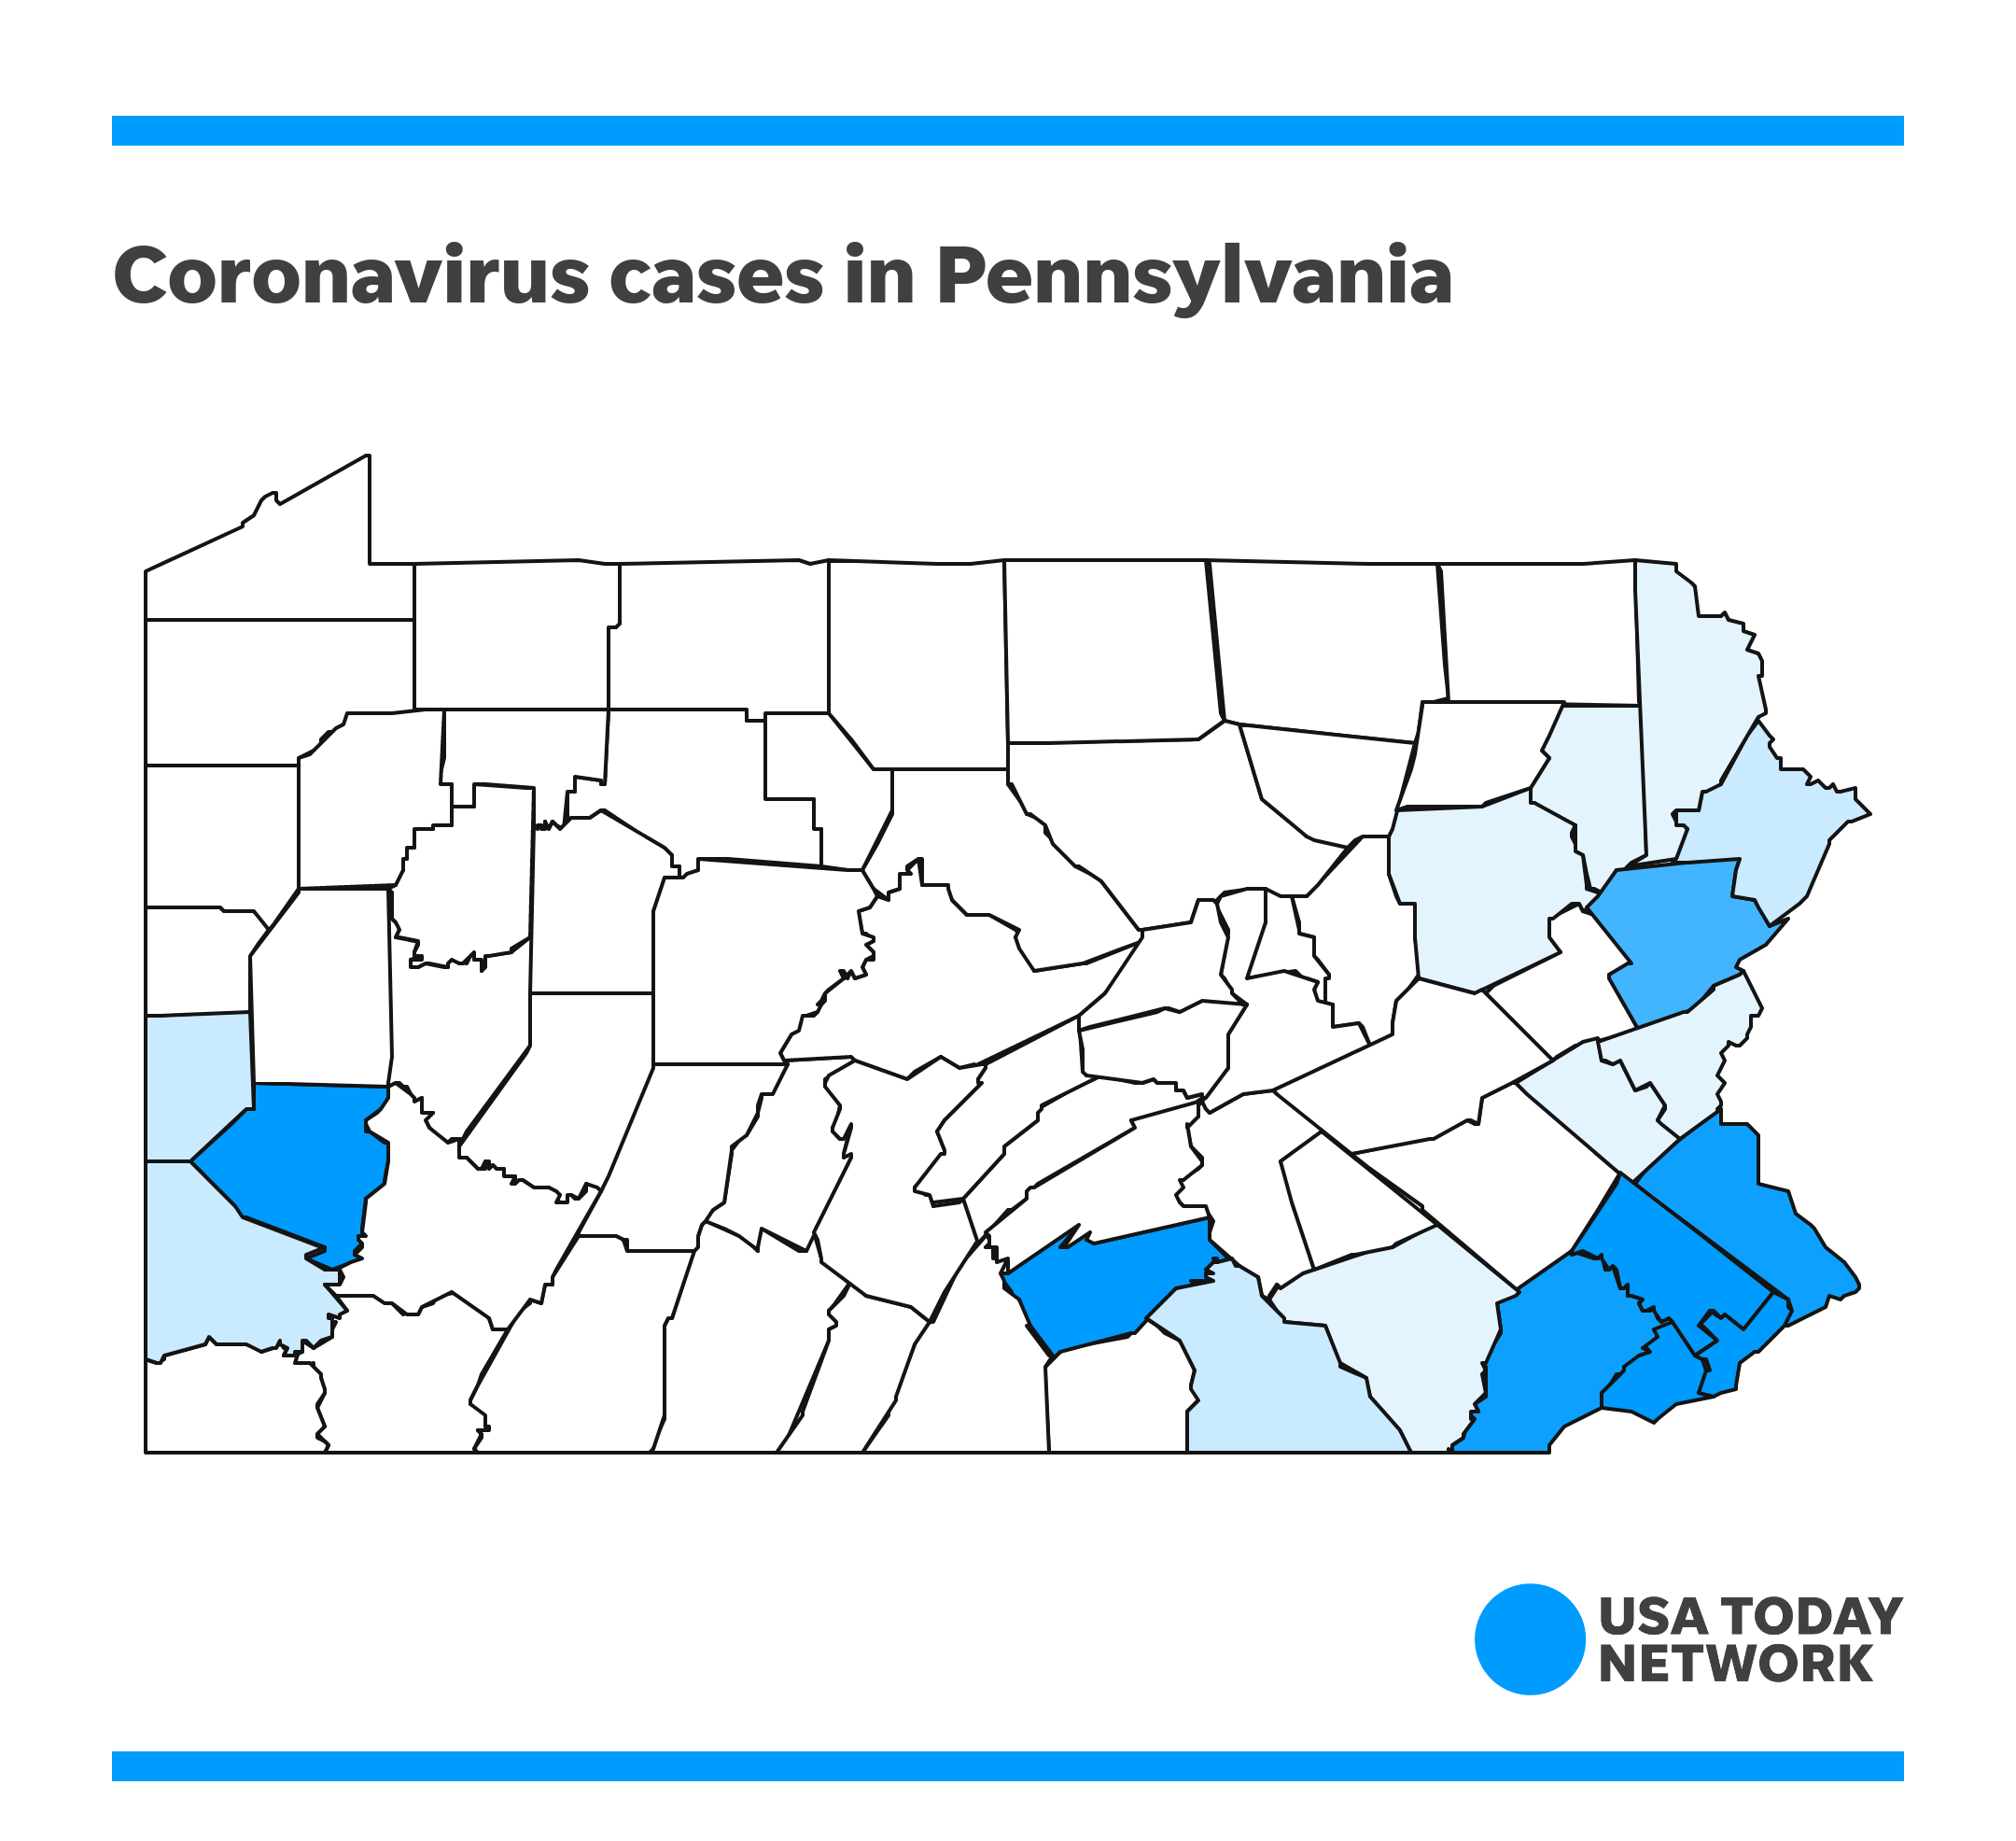 Pa. coronavirus map: Track outbreak by county; See cases over time